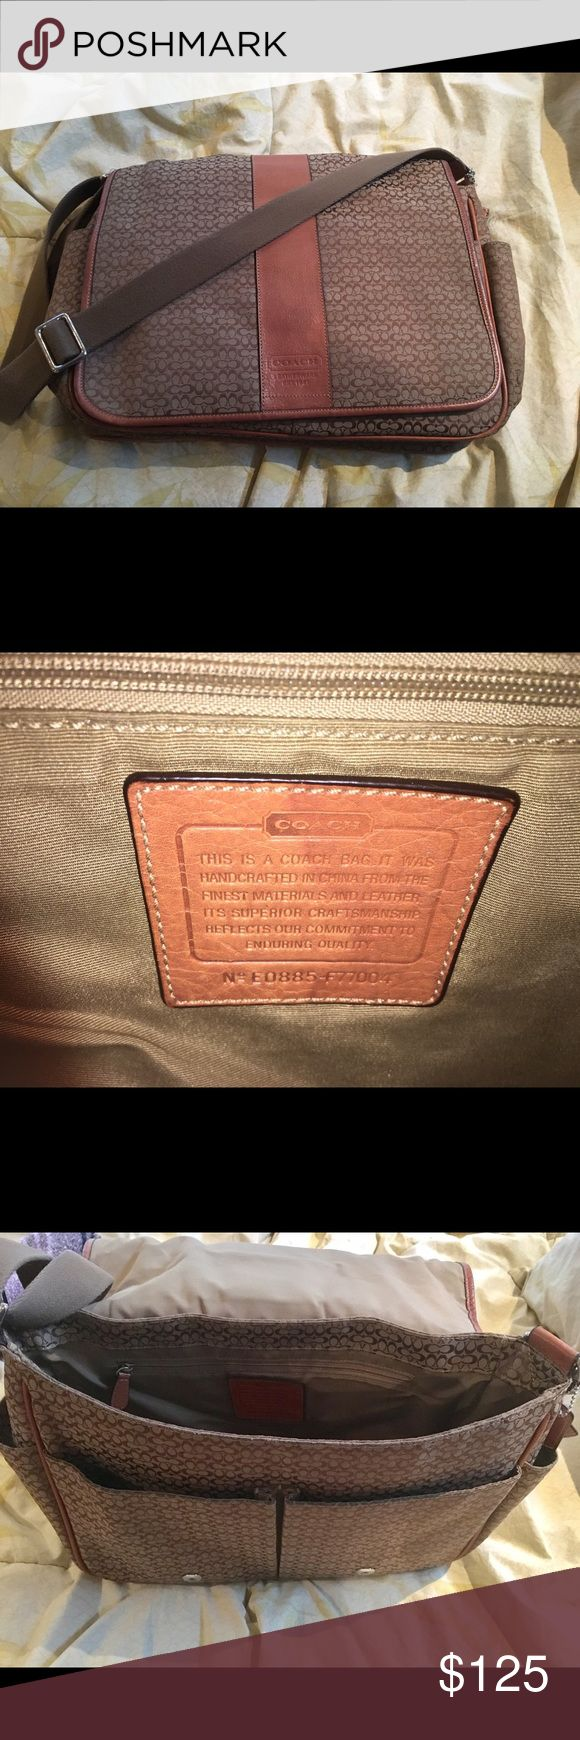 Coach messenger bag Used gently with barely any signs of wear. Nice, deep bag. Coach Bags Messenger Bags